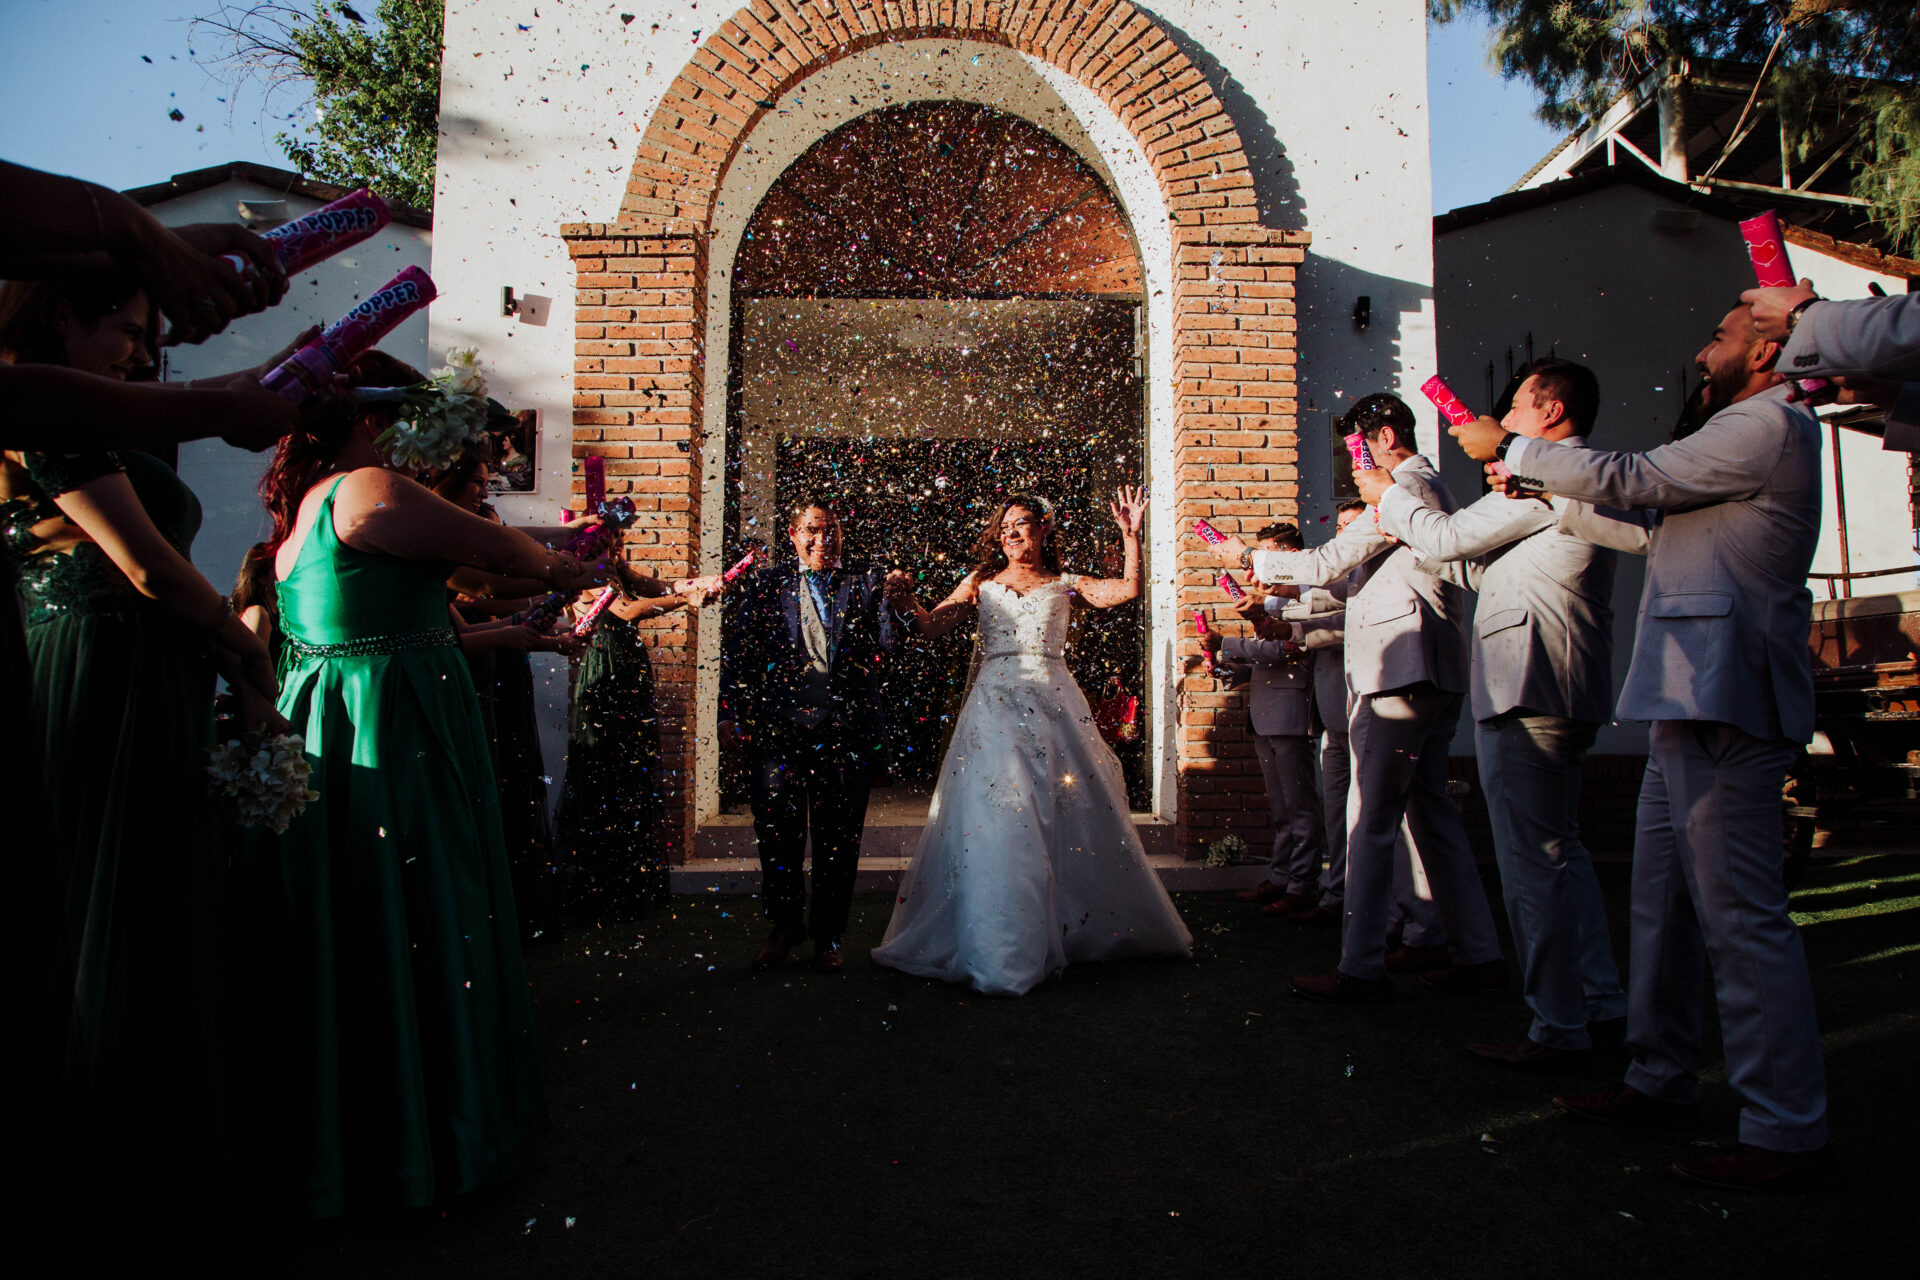 javier_noriega_fotografo_bodas_torreon_coahuila_zacatecas_wedding_photographer34a